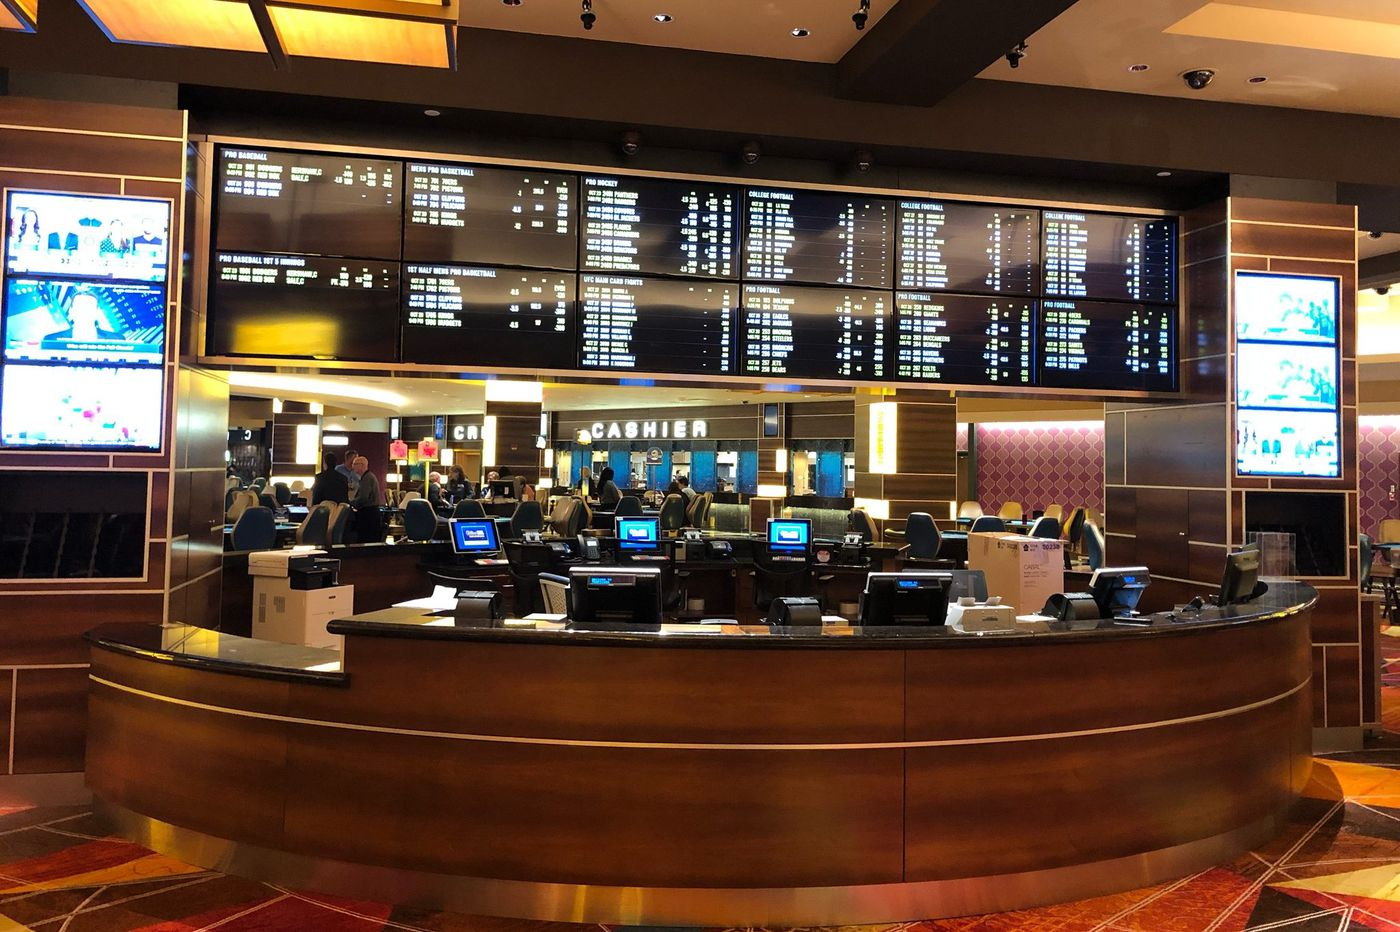 Tropicana expected to open its sportsbook within days | Sports betting